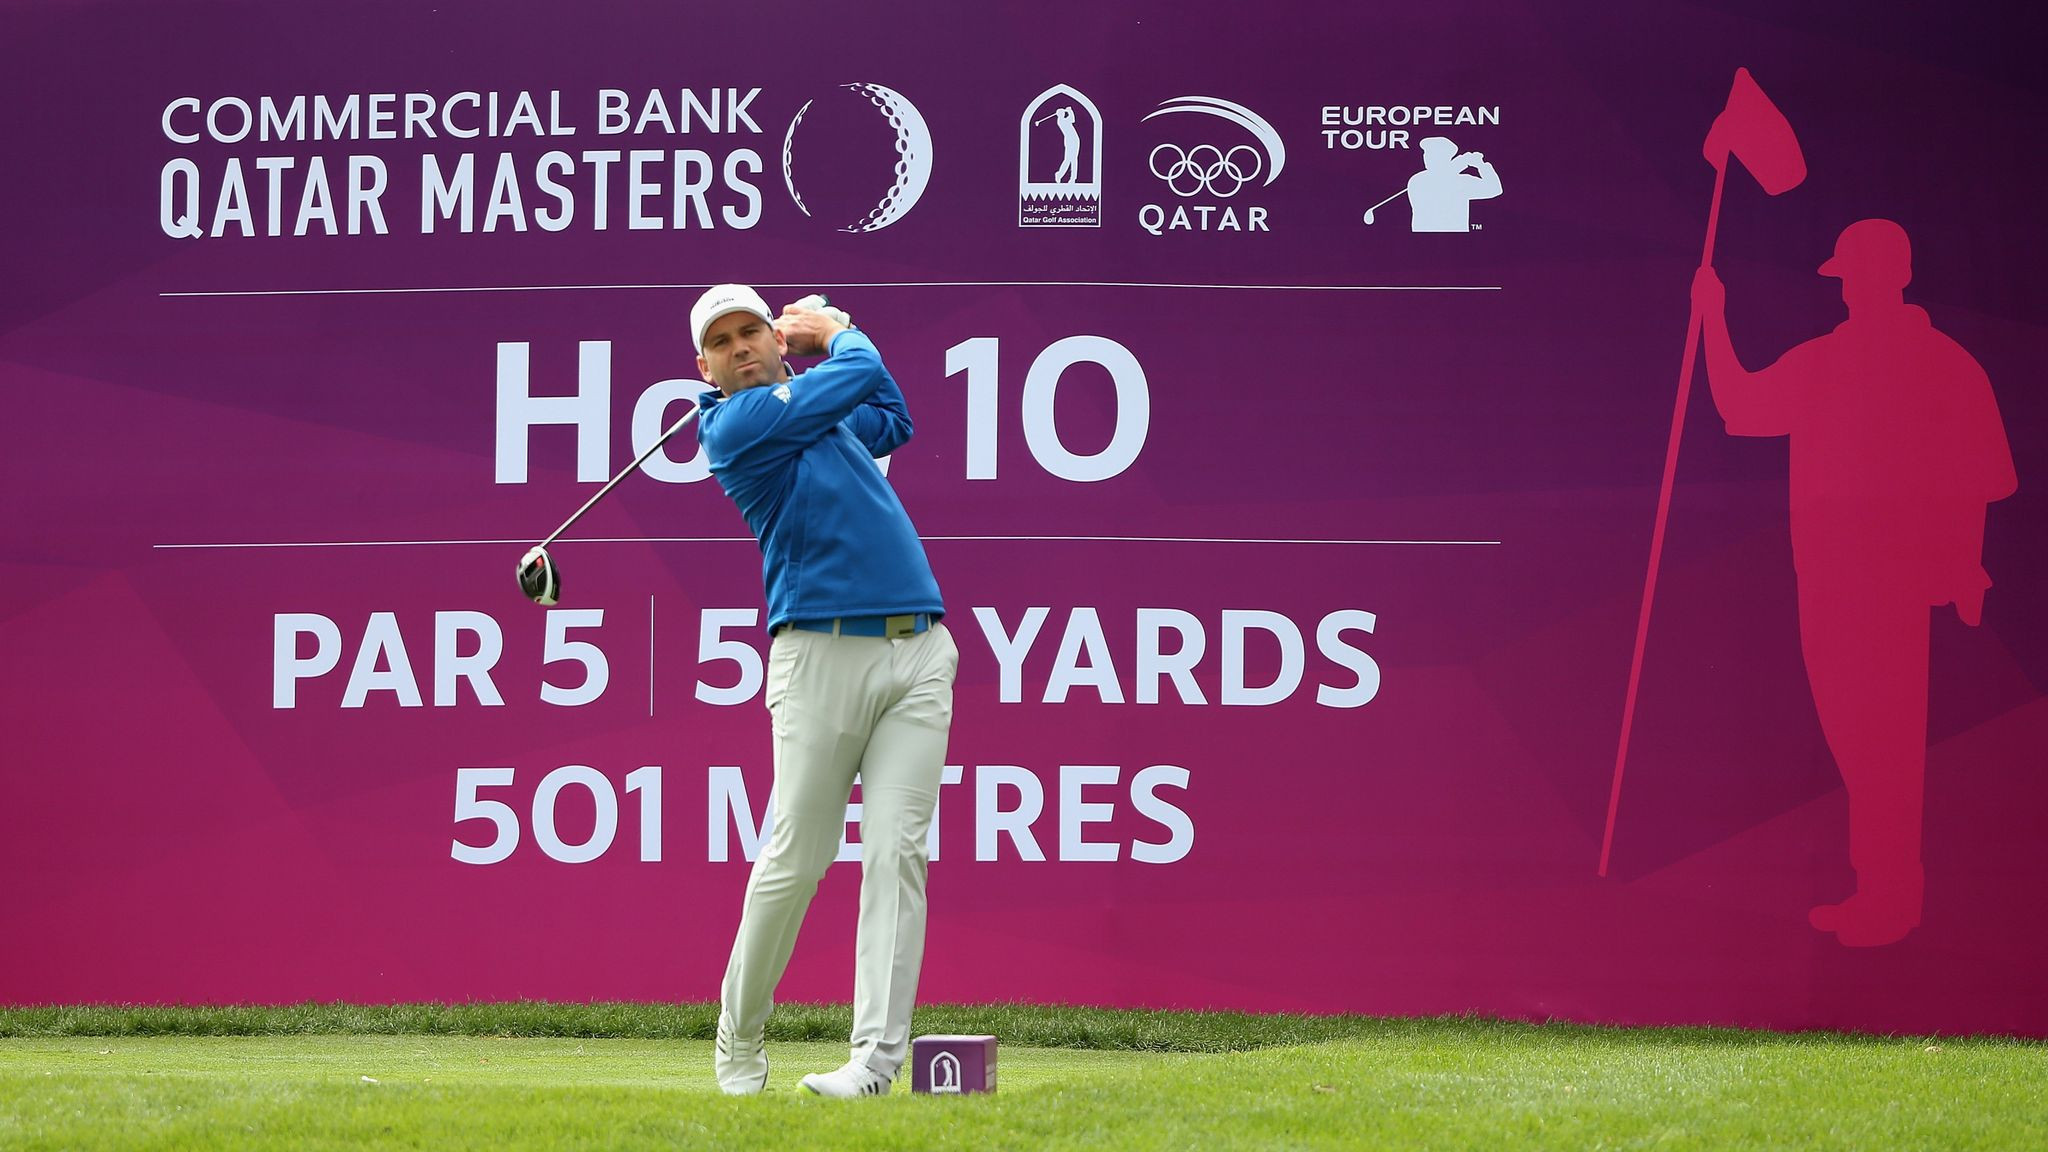 commercial bank qatar masters betting games